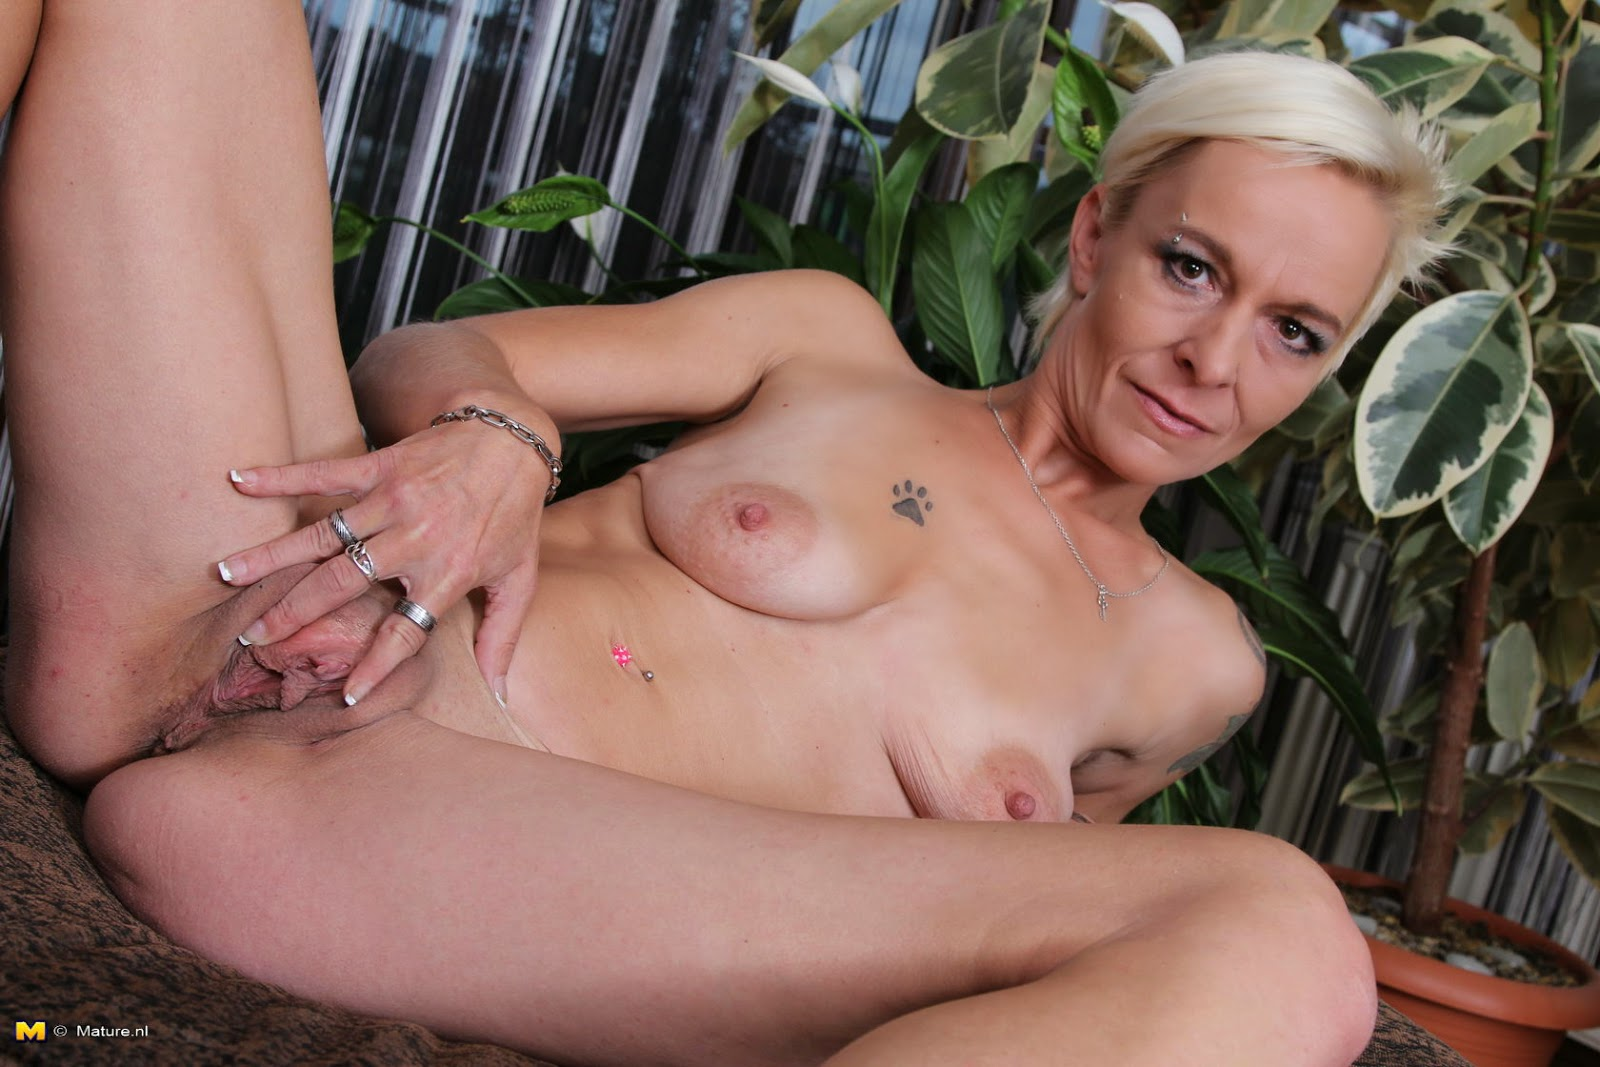 Mature naked woman skinny